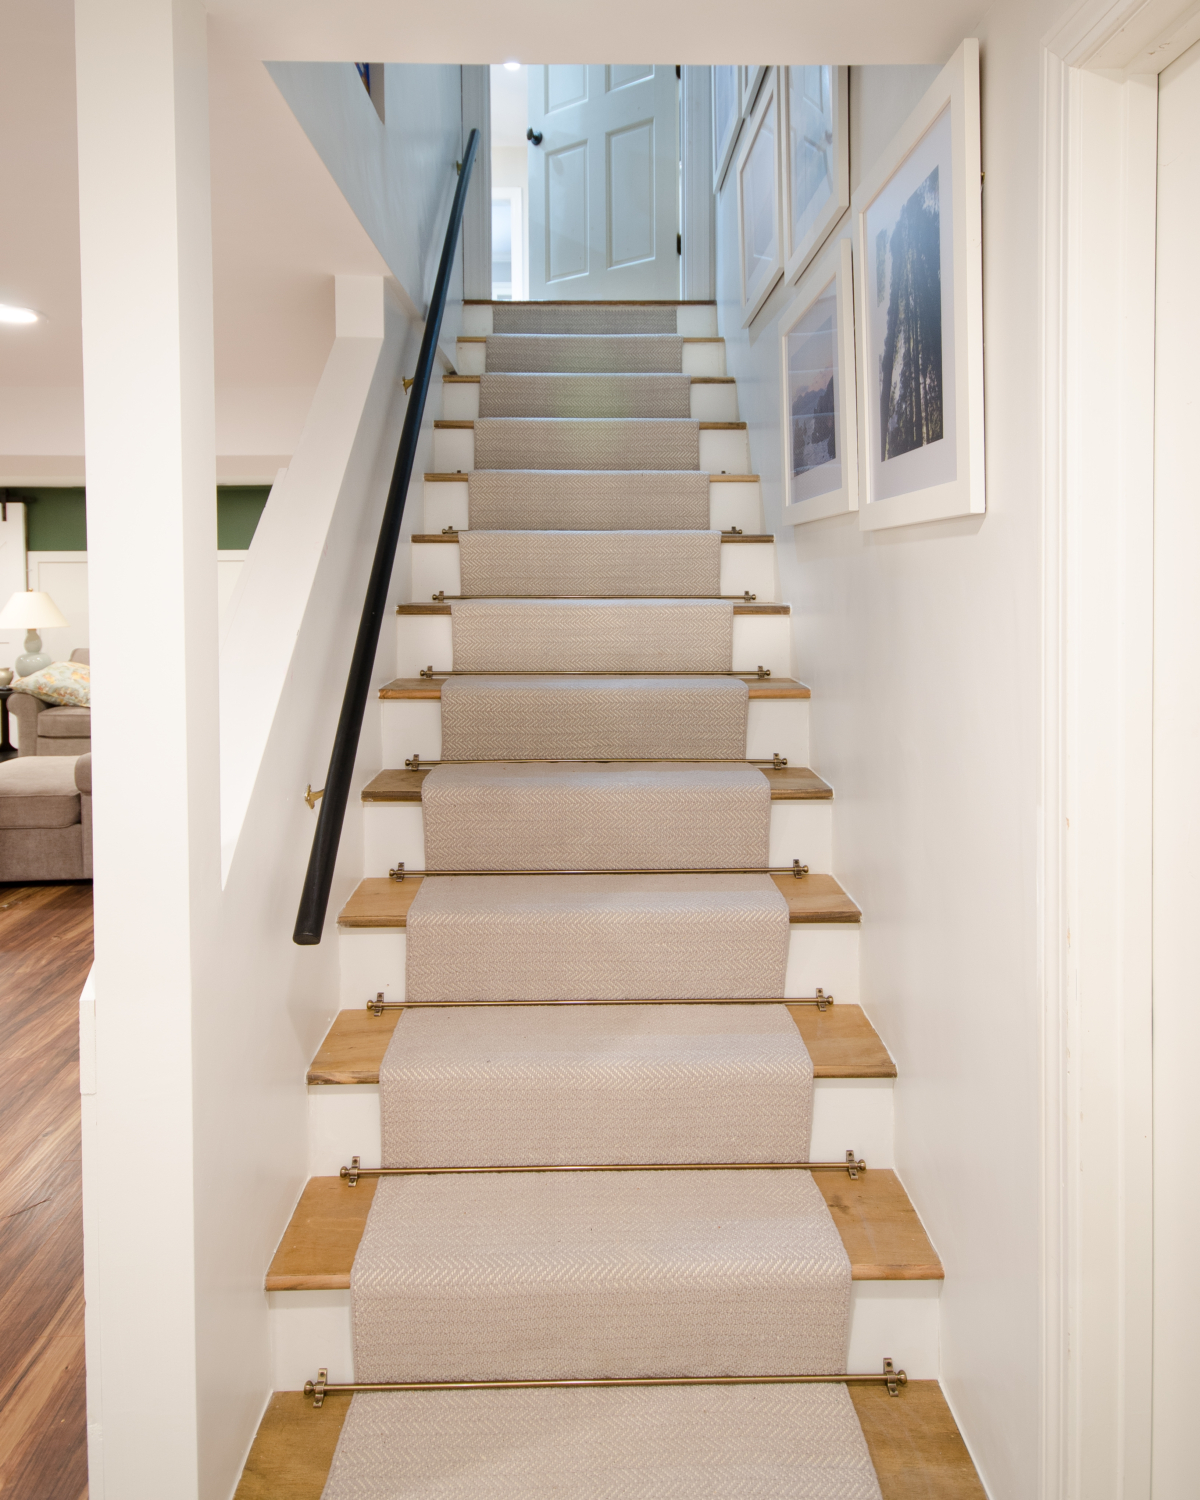 How to Install a Stair Runner - The Chronicles of Home